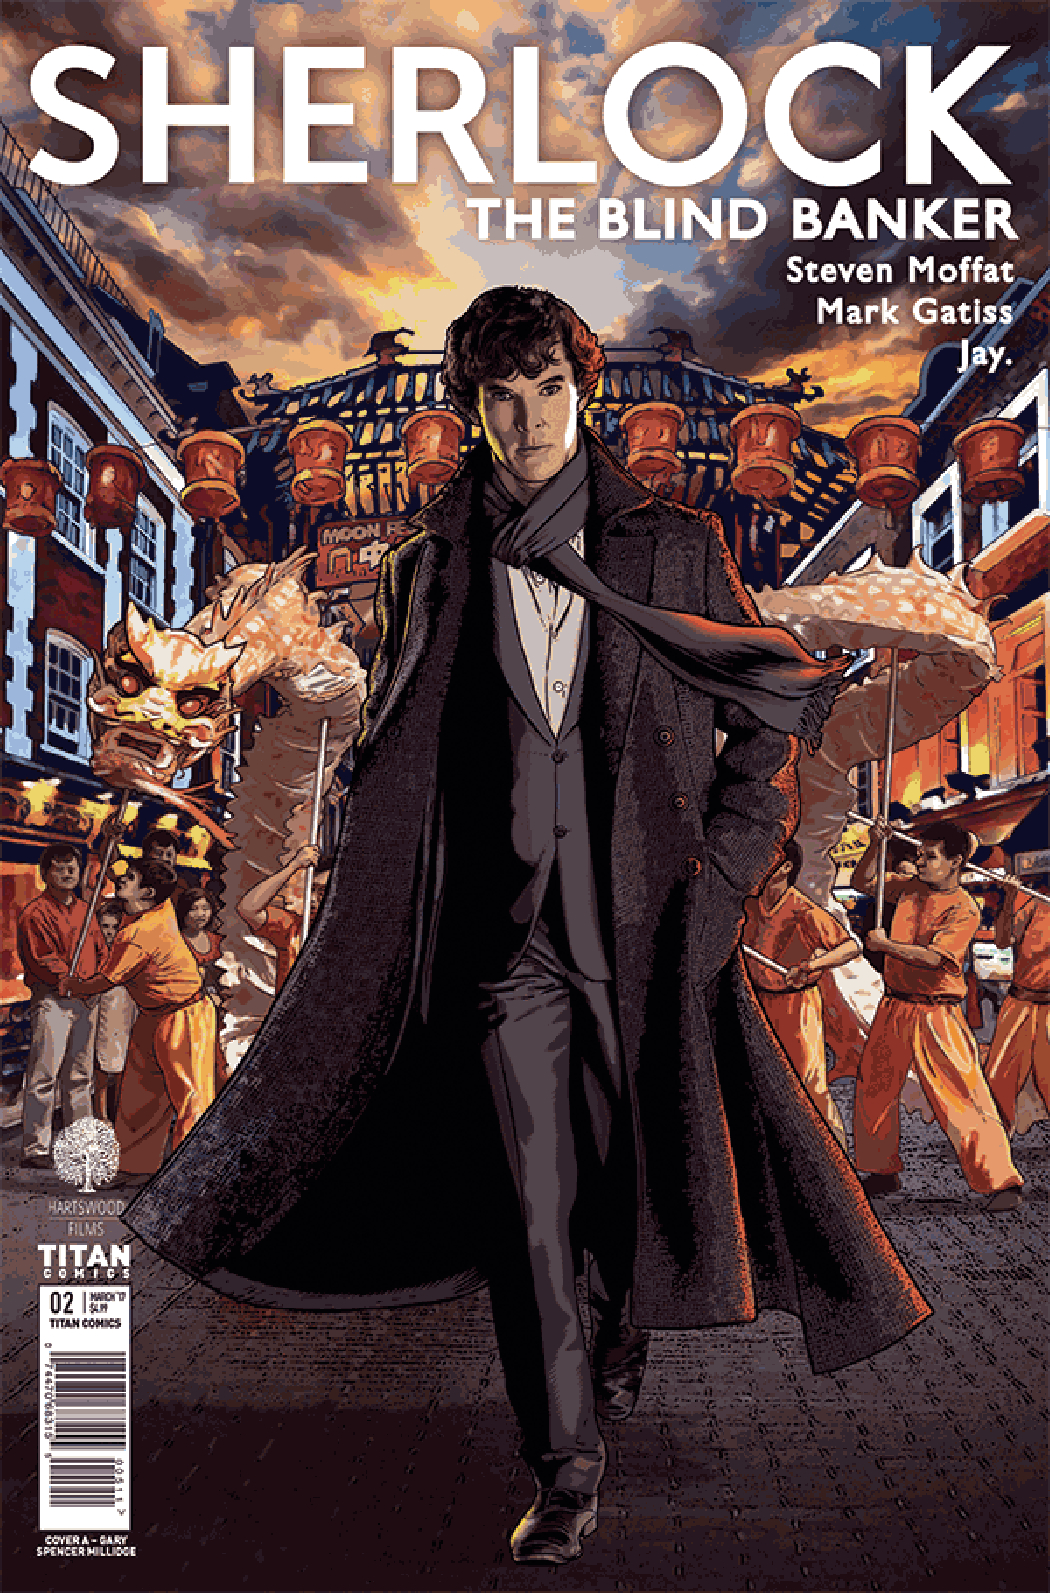 SHERLOCK BLIND BANKER #2 (OF 6) CVR A MILLIDGE